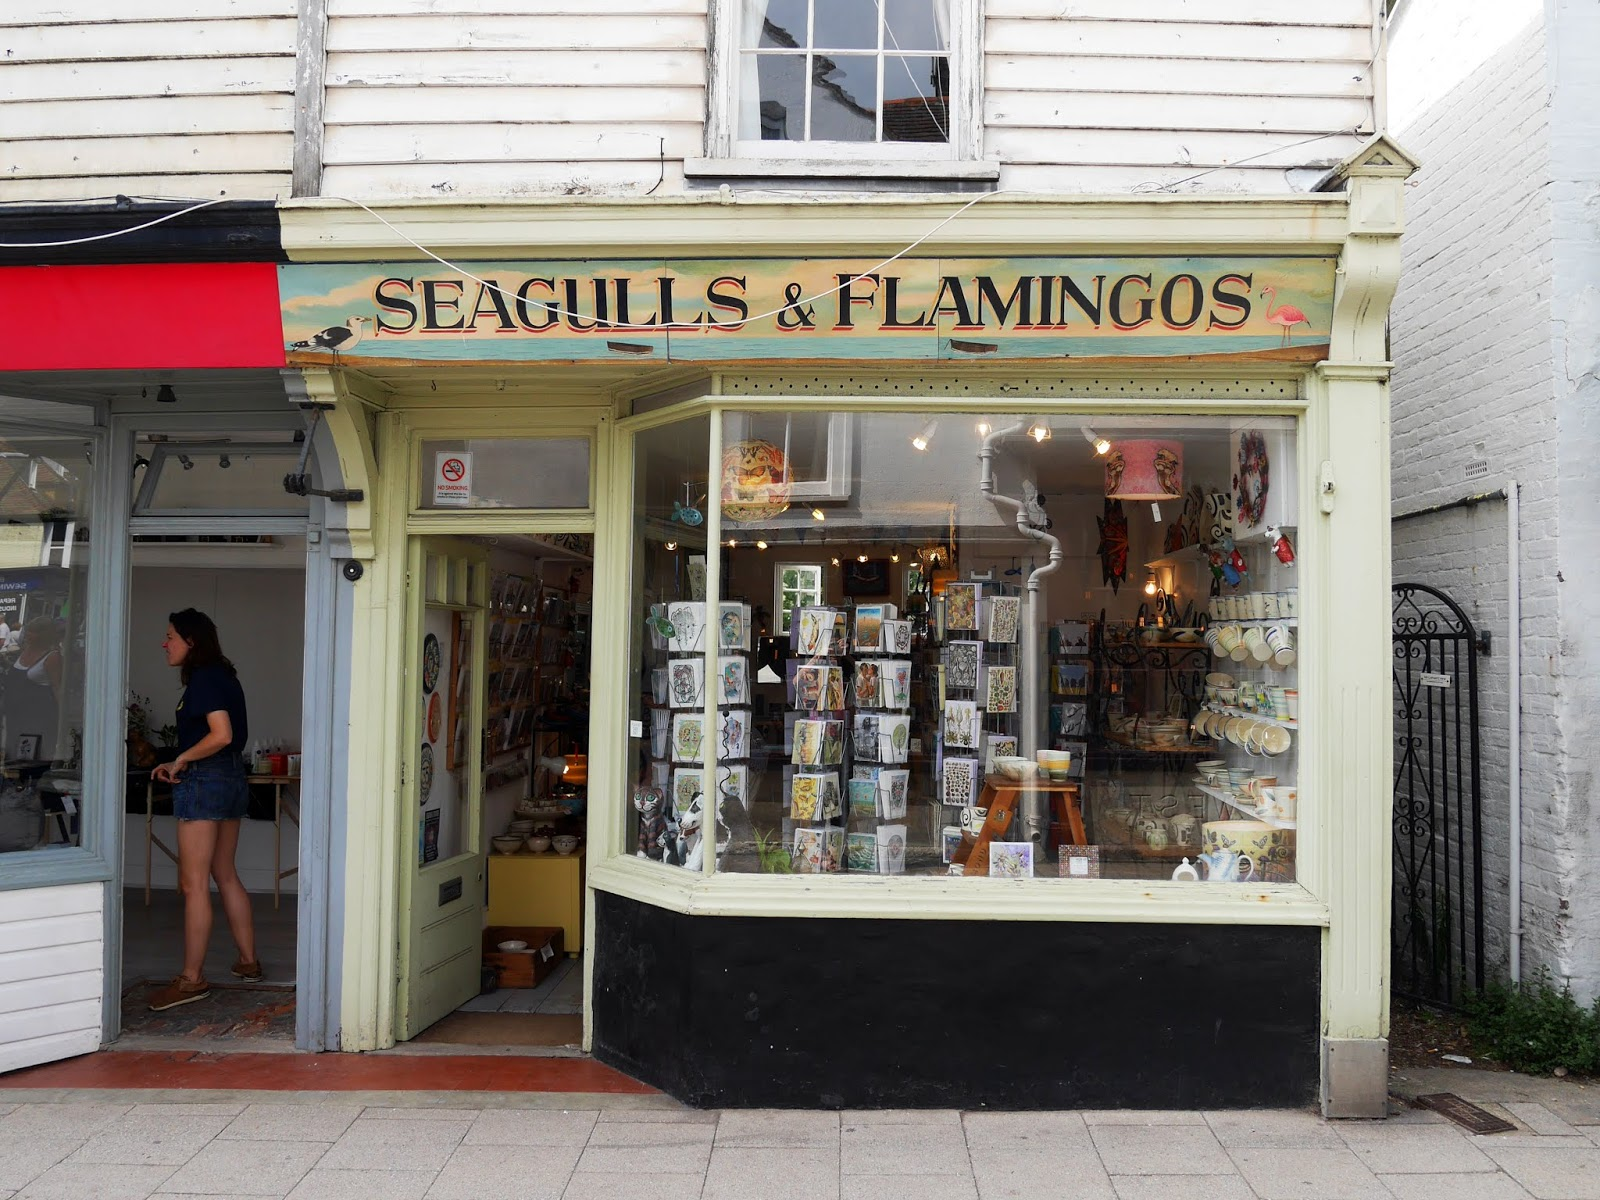 Seagulls & Flamingos shop, Whitstable